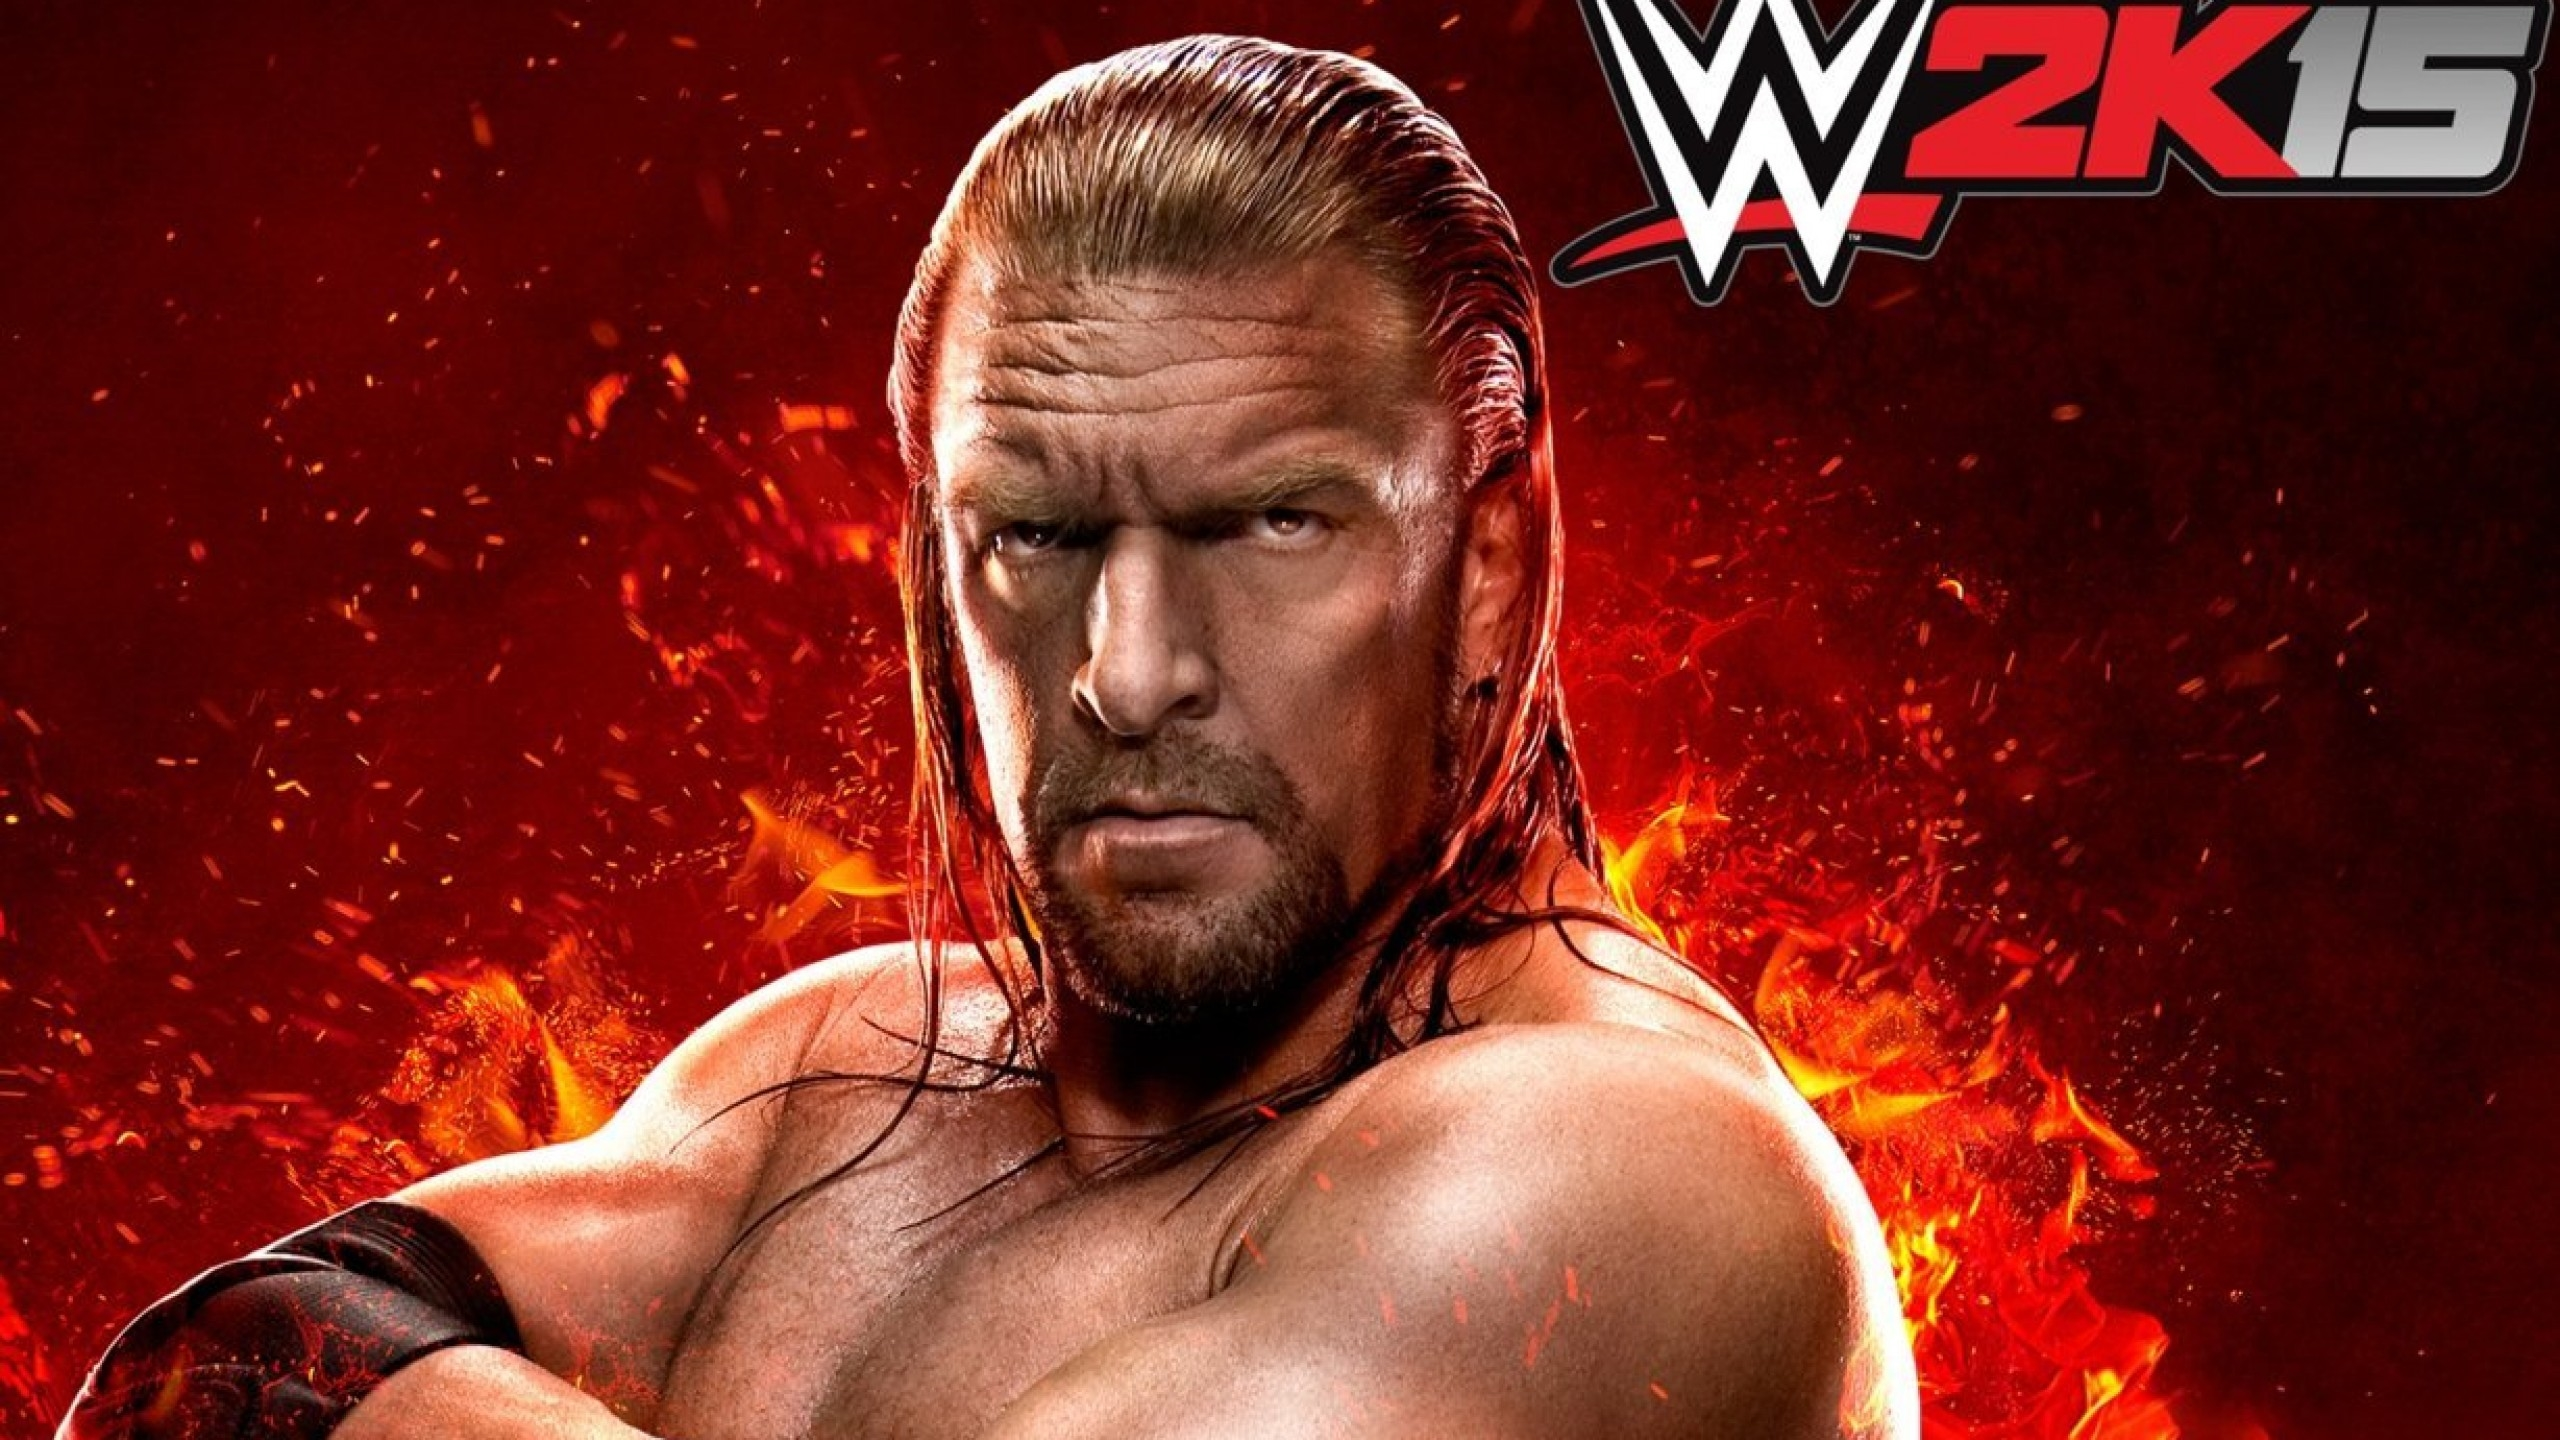 hhh wallpapers